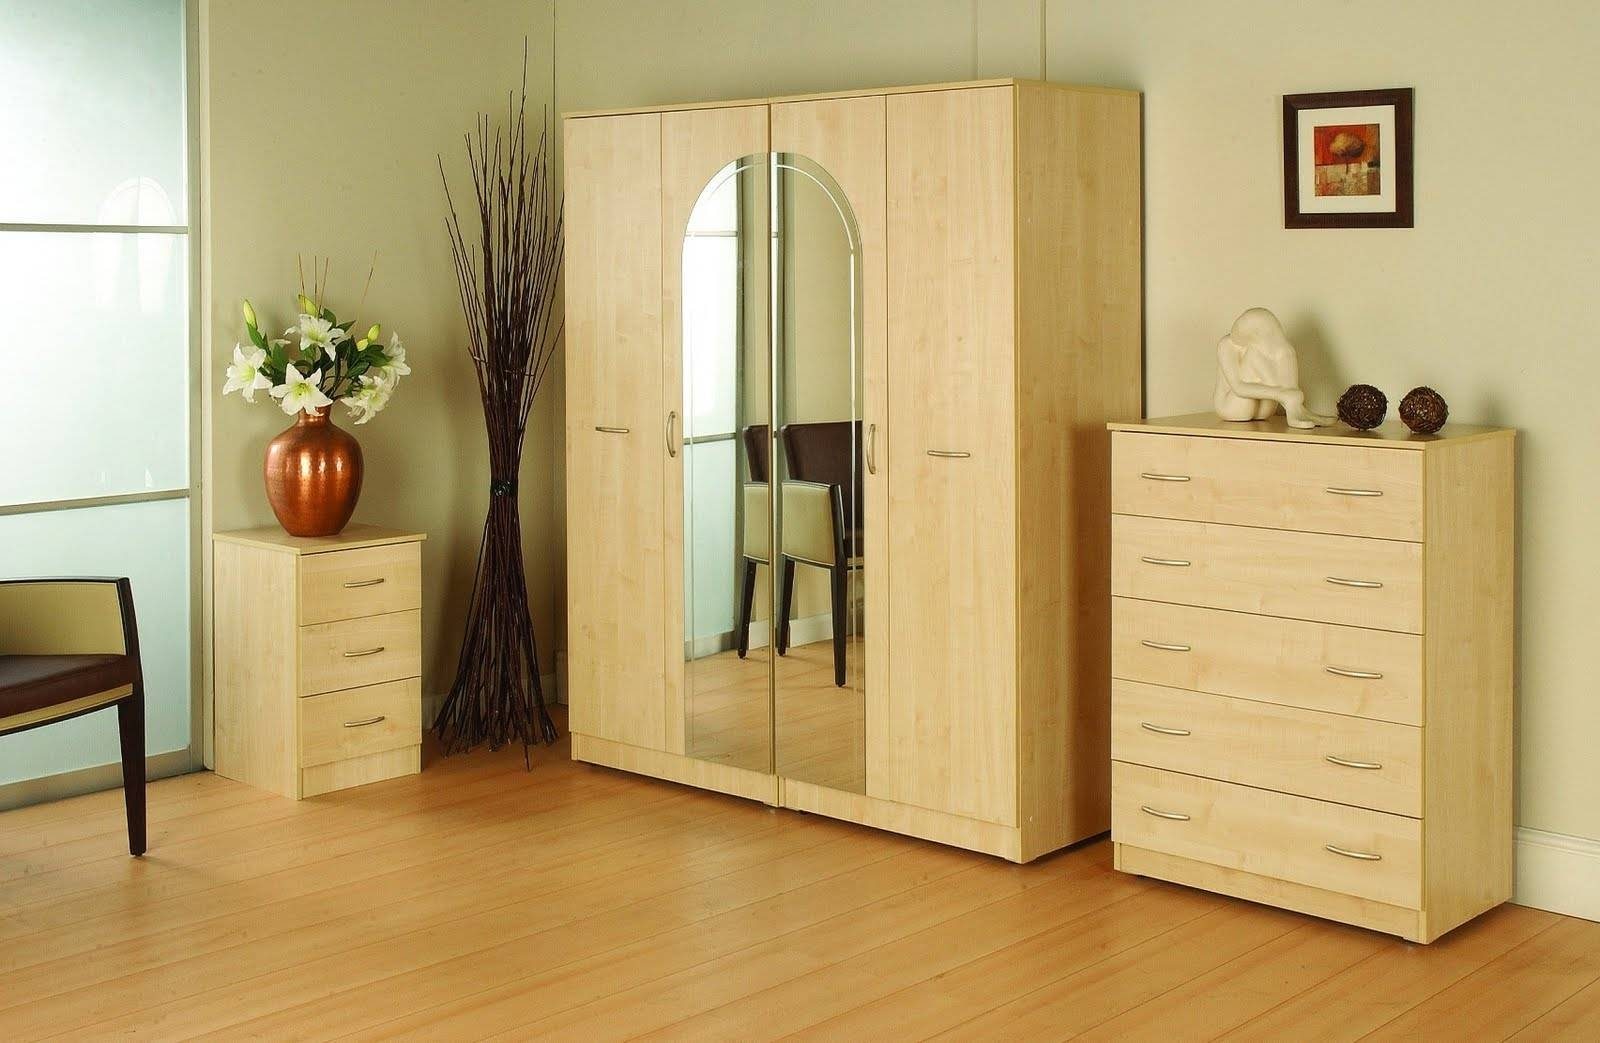 Bedroom Set With Wardrobe Closet | Carpetcleaningvirginia pertaining to Wardrobes Sets (Image 6 of 15)